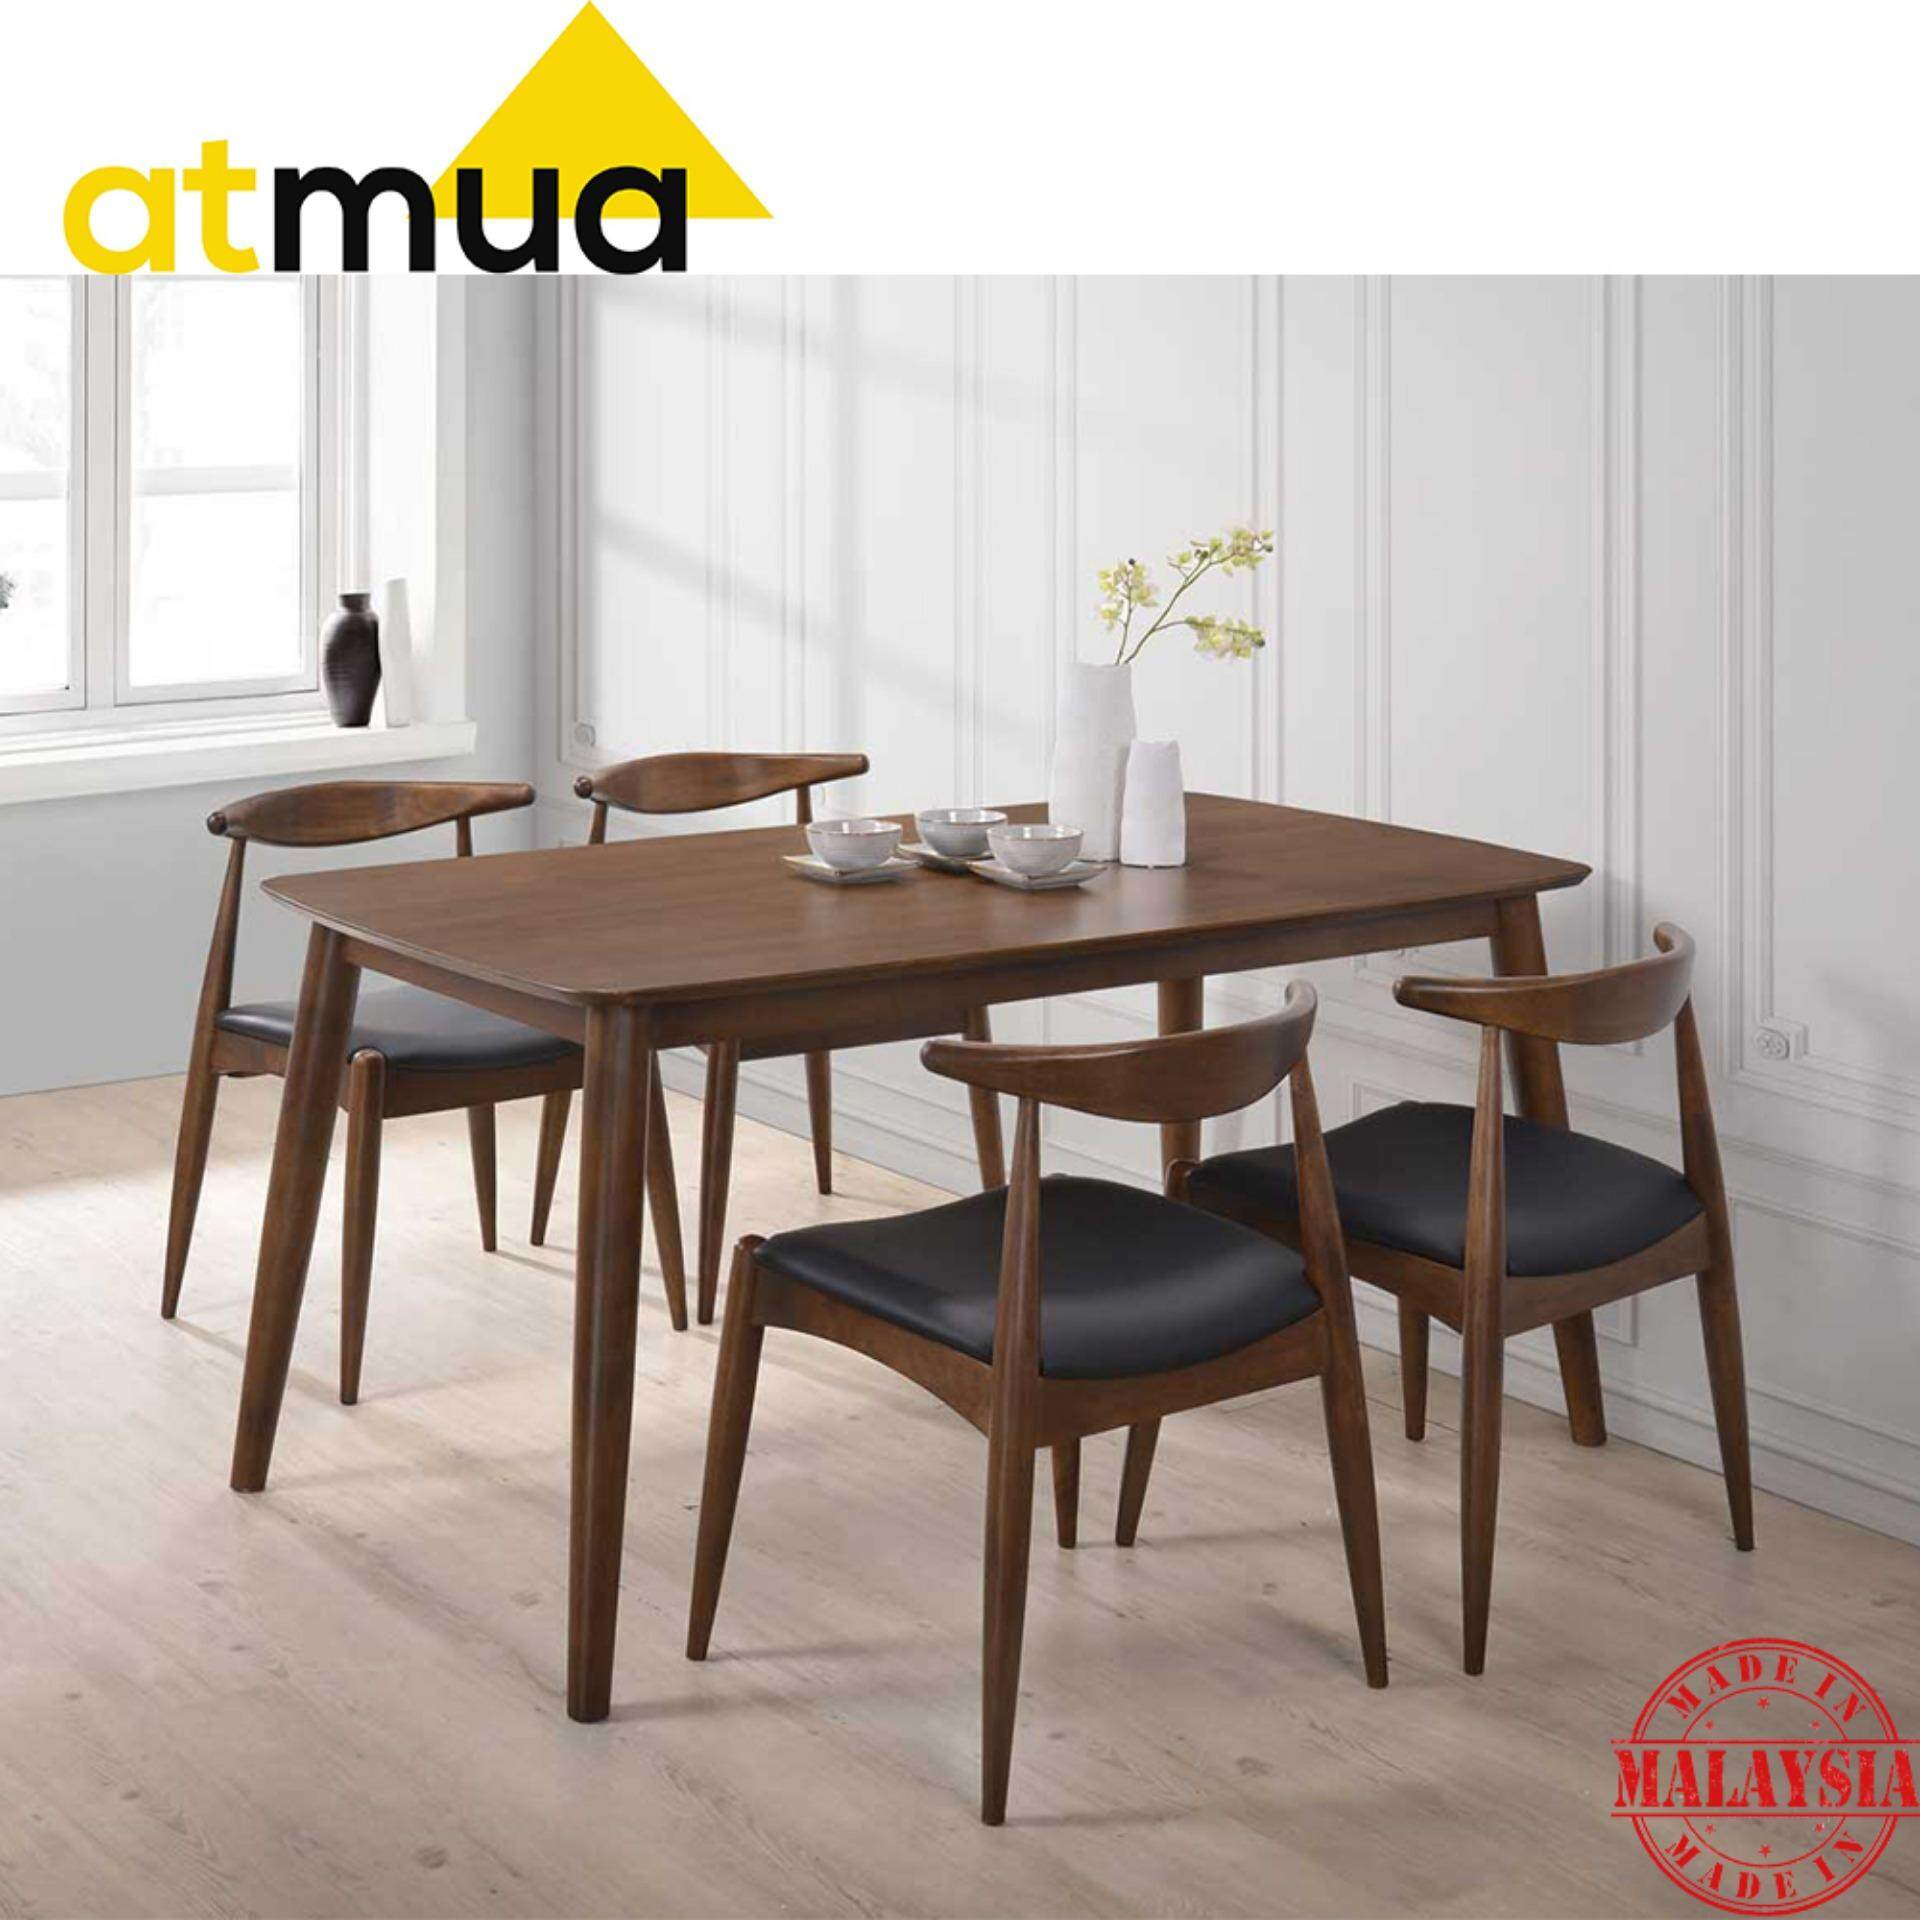 Superbe Atmua Olim Scandinavian Dining Set (1 Table + 4 Chairs)   Scandinavian  Style [Full Solid Wood]